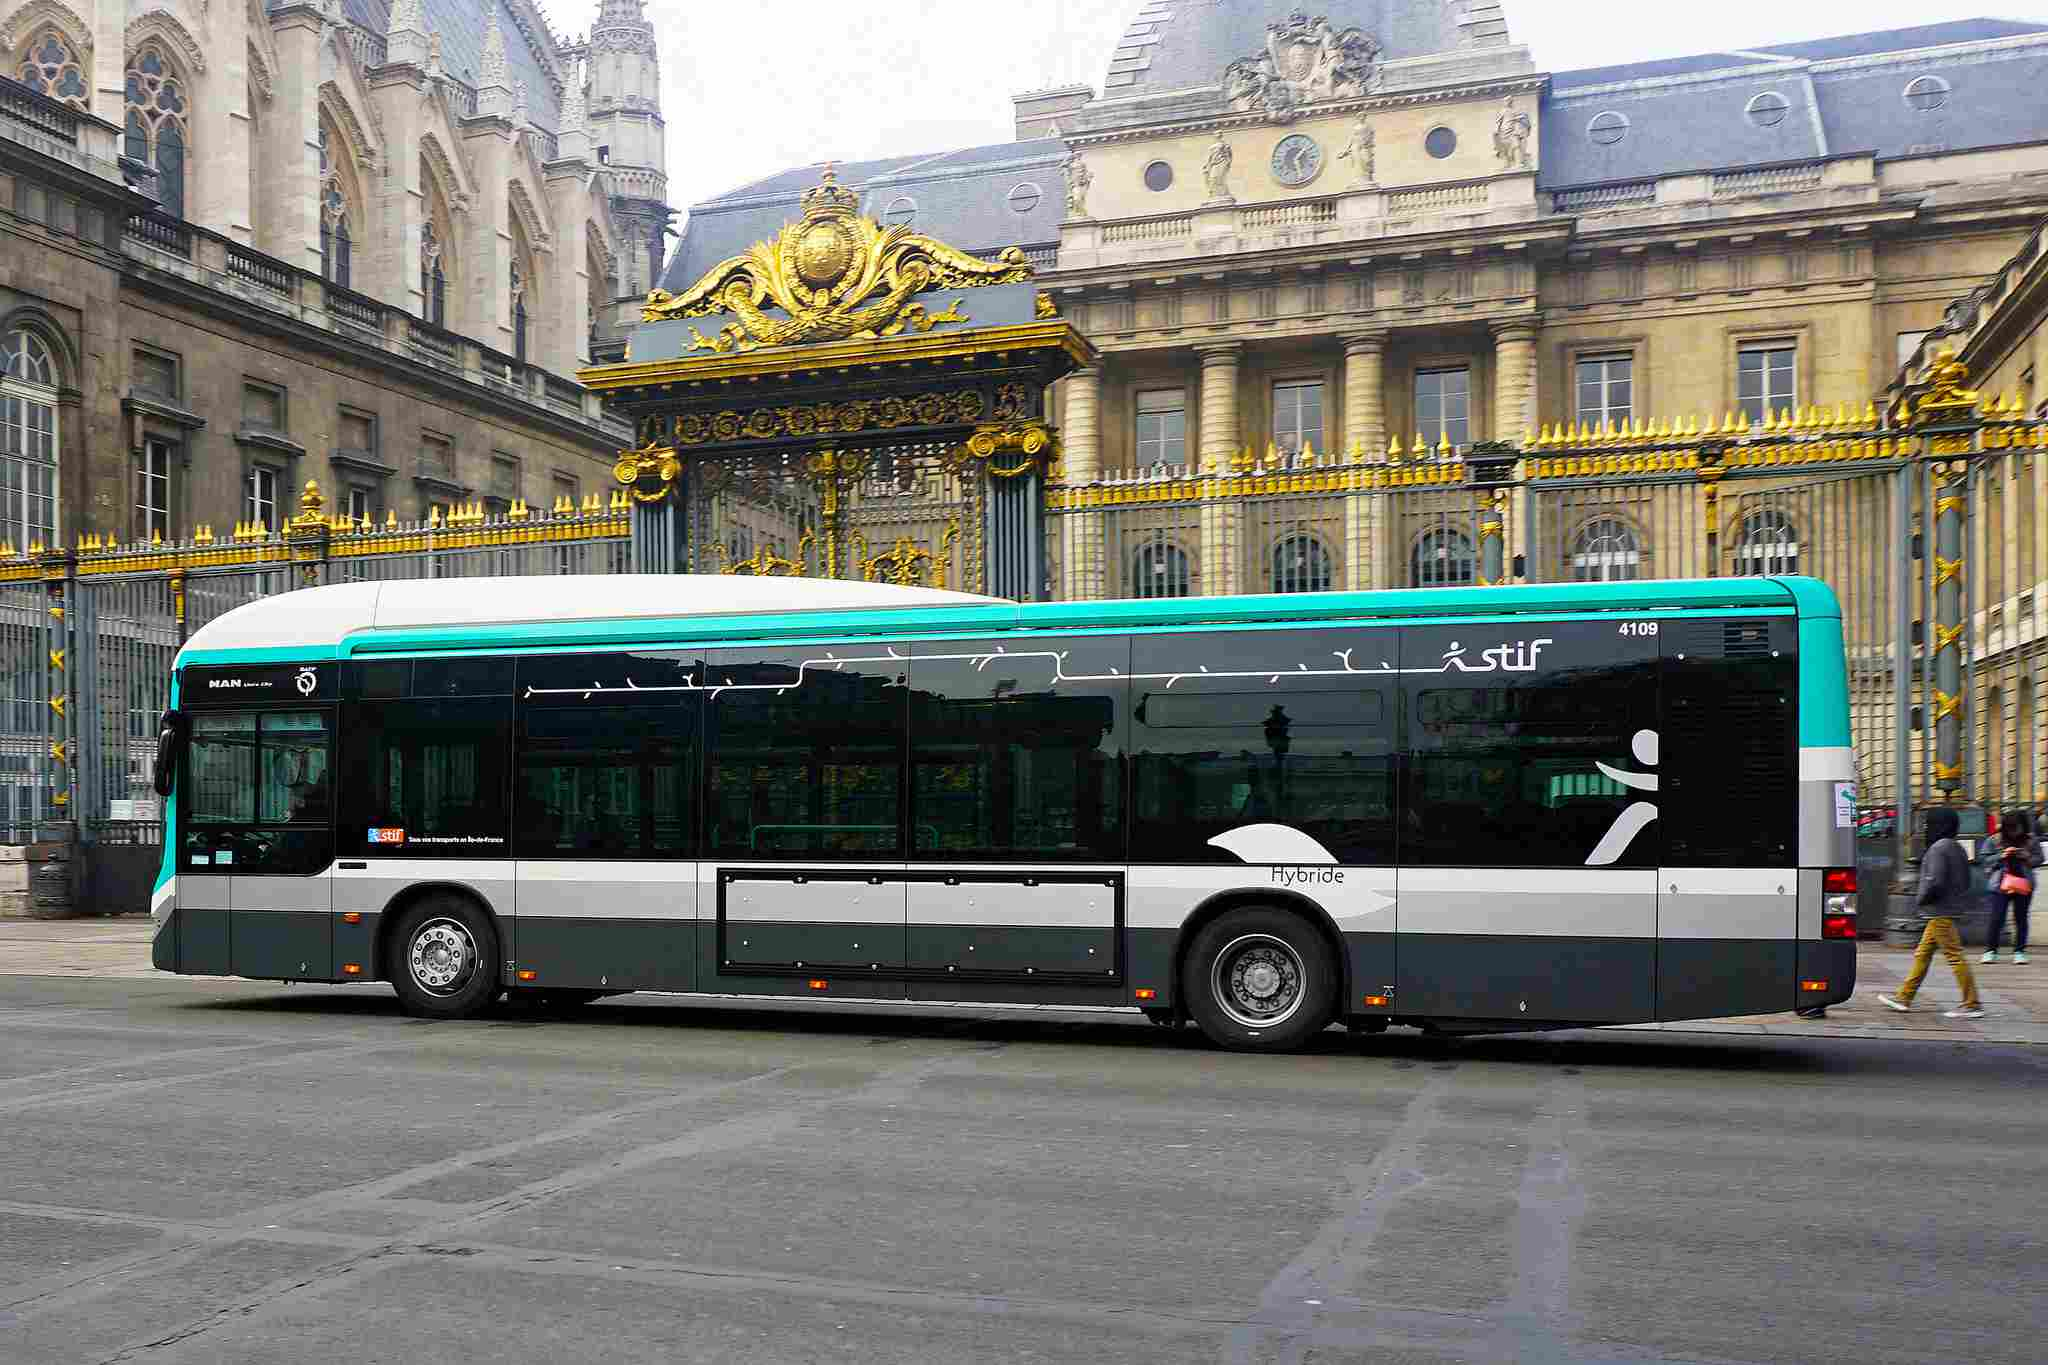 Taking a city bus can be a great, inexpensive way to go sightseeing in Paris.